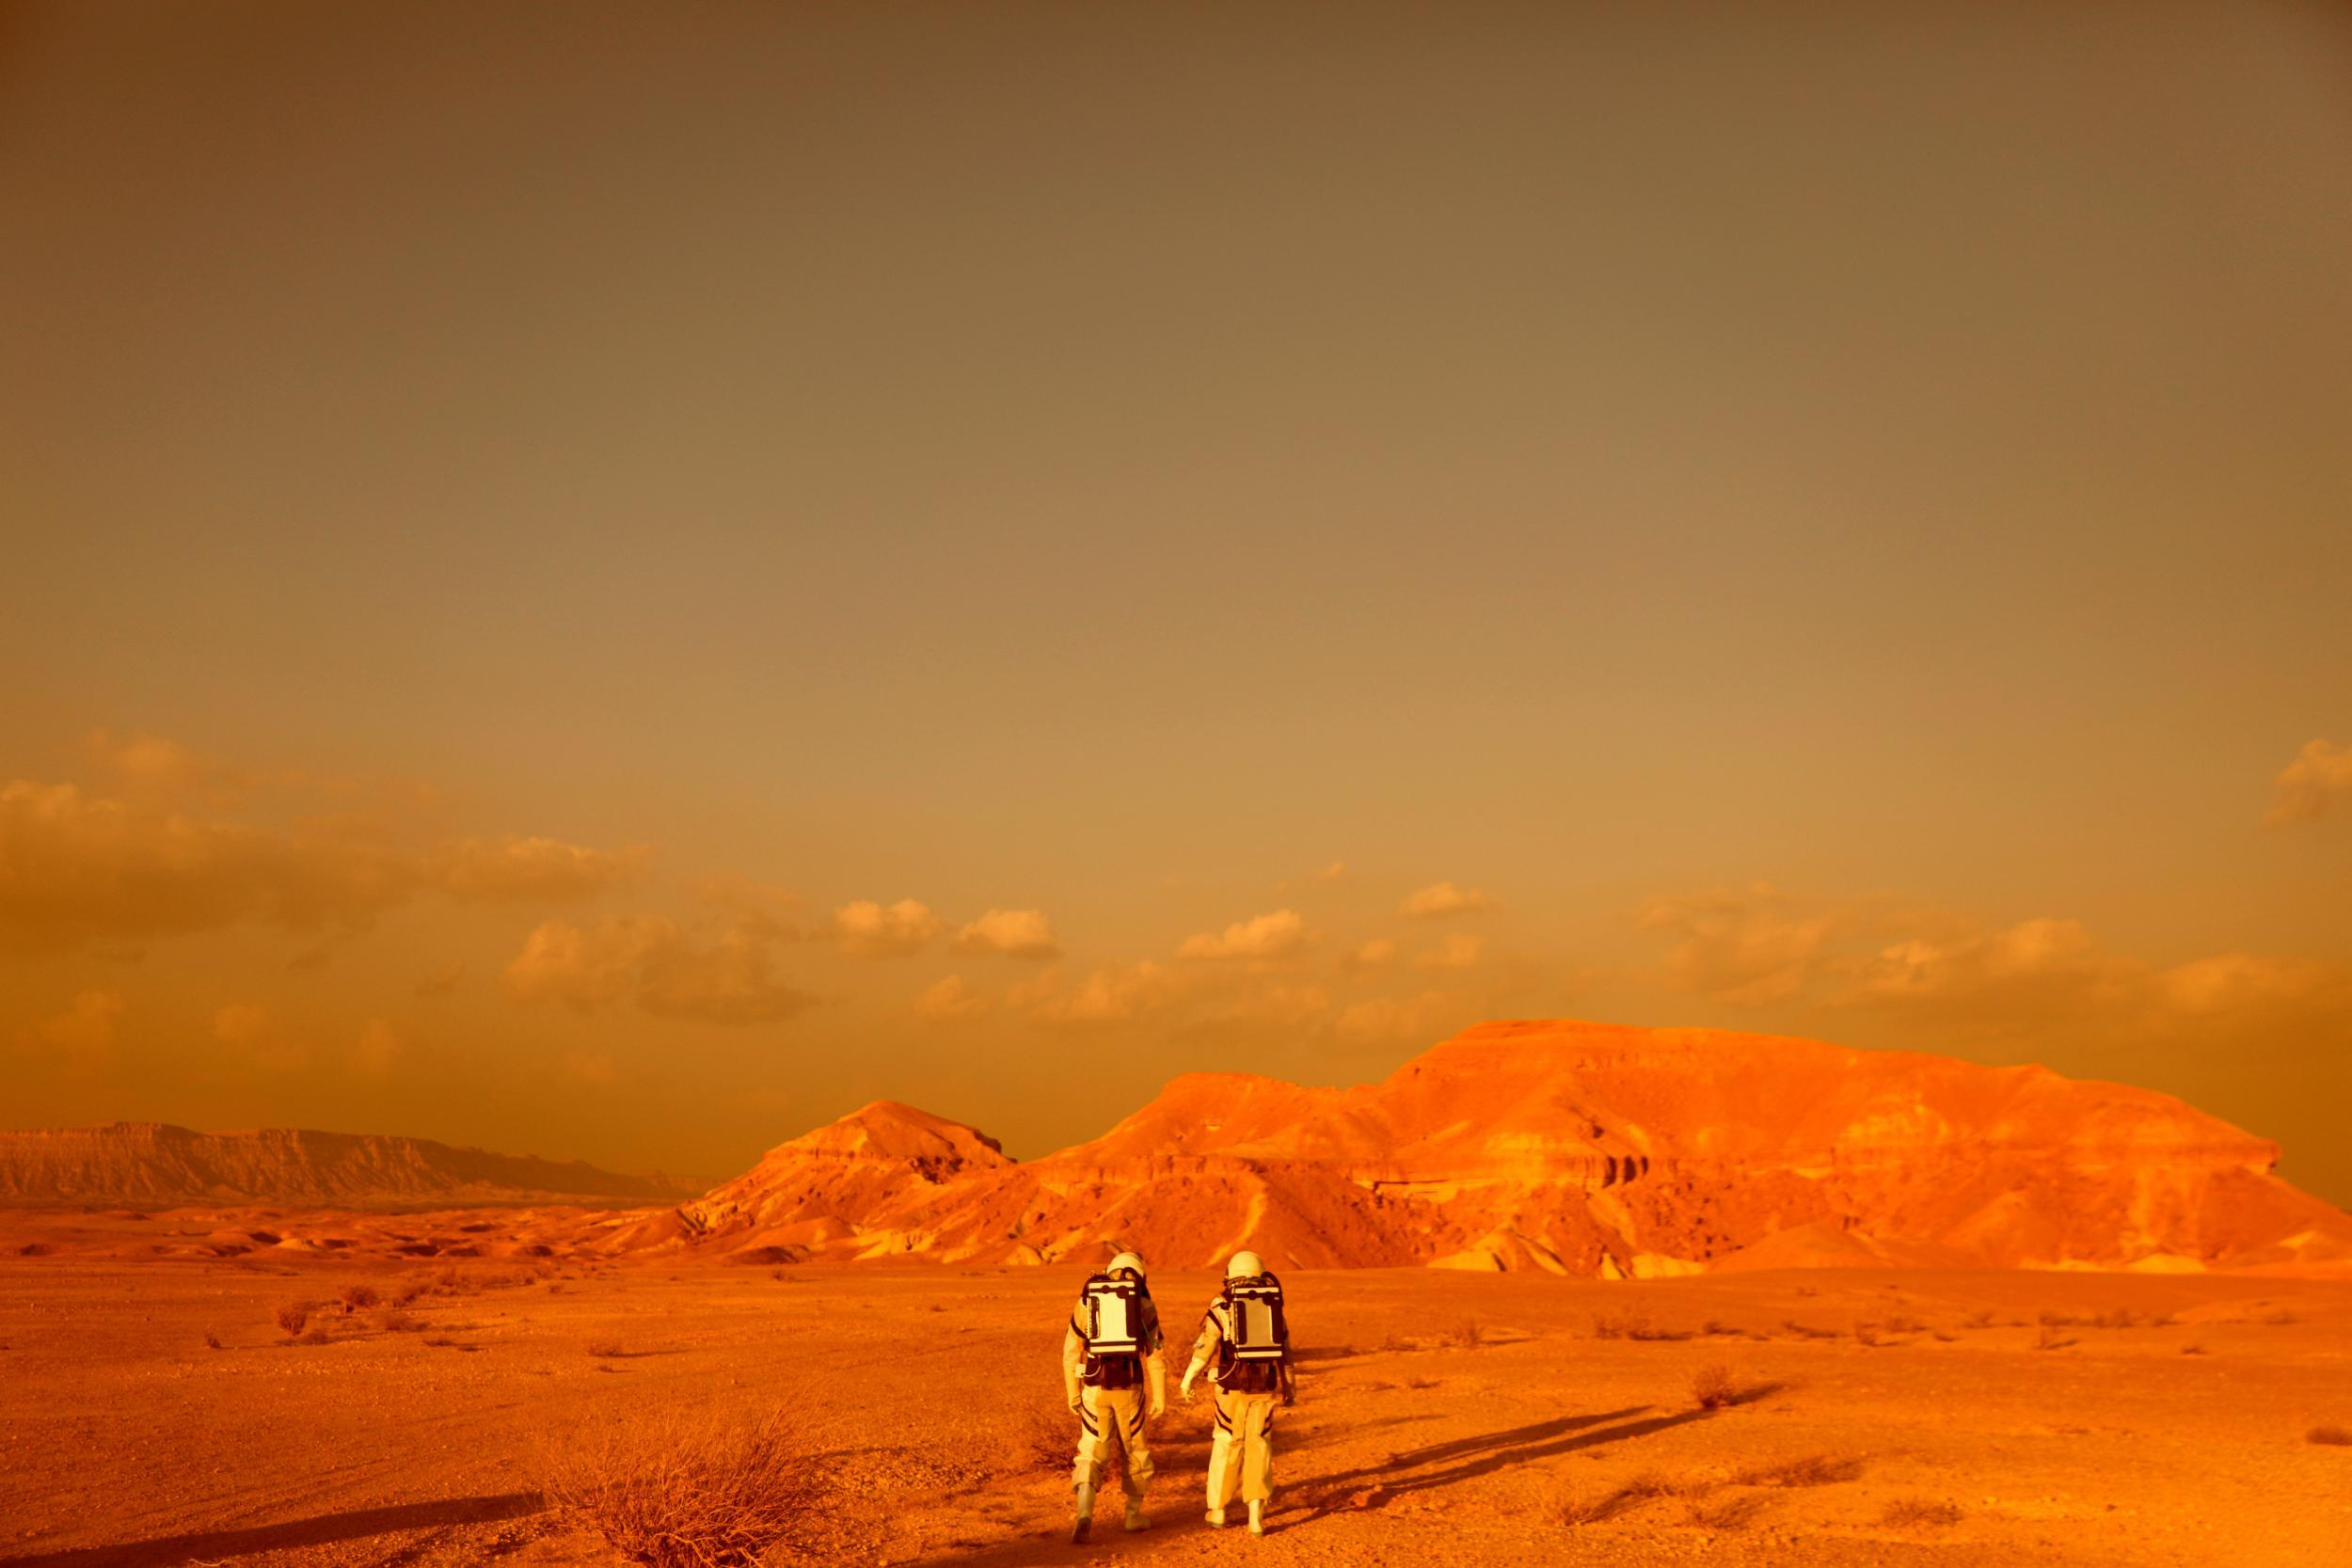 mission to mars to launch in a decade as first step towards meeting